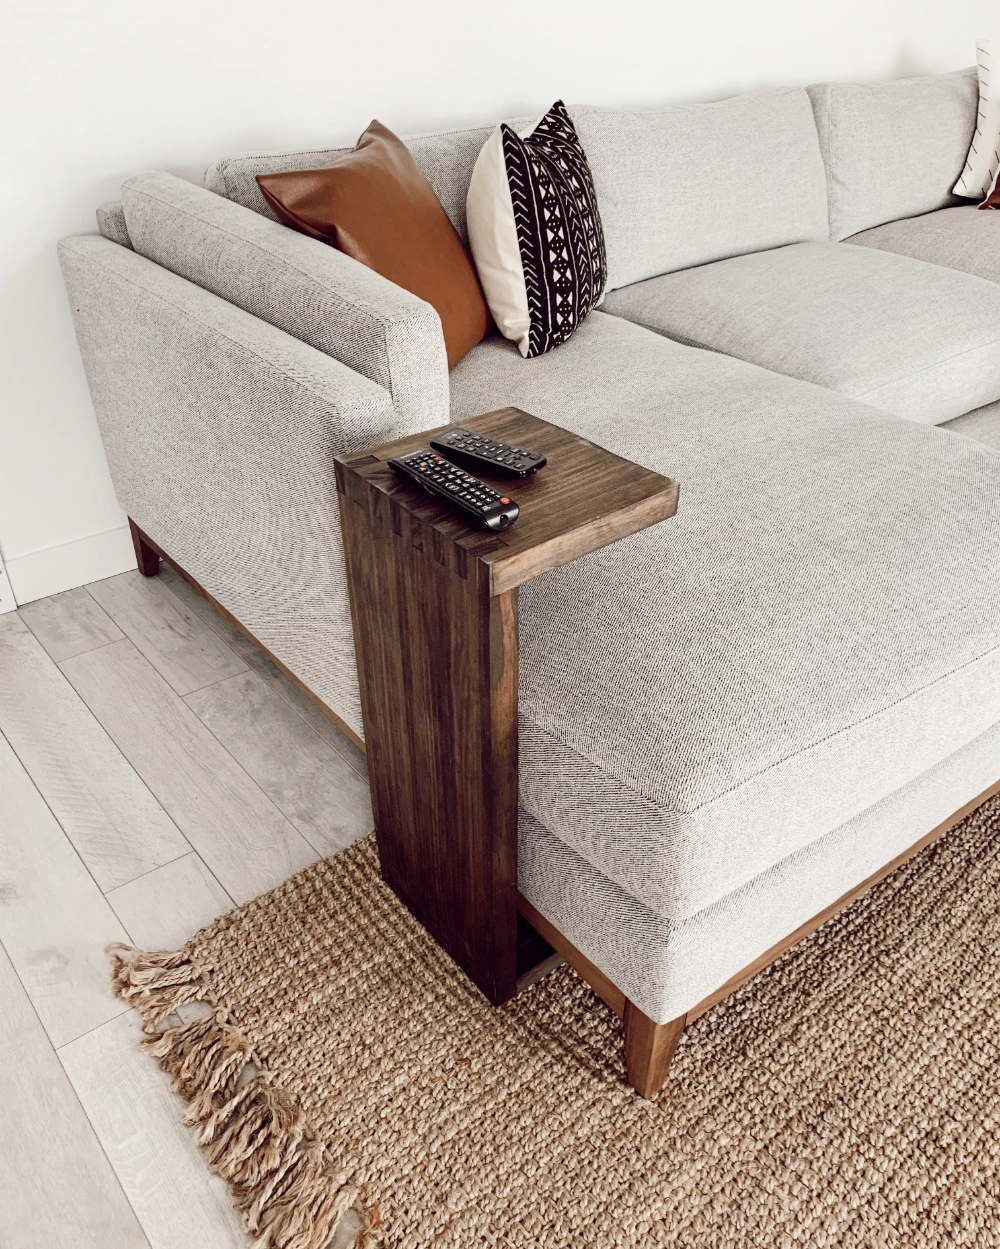 Wood C Table Google Search Couch Table Diy Modern Side Table